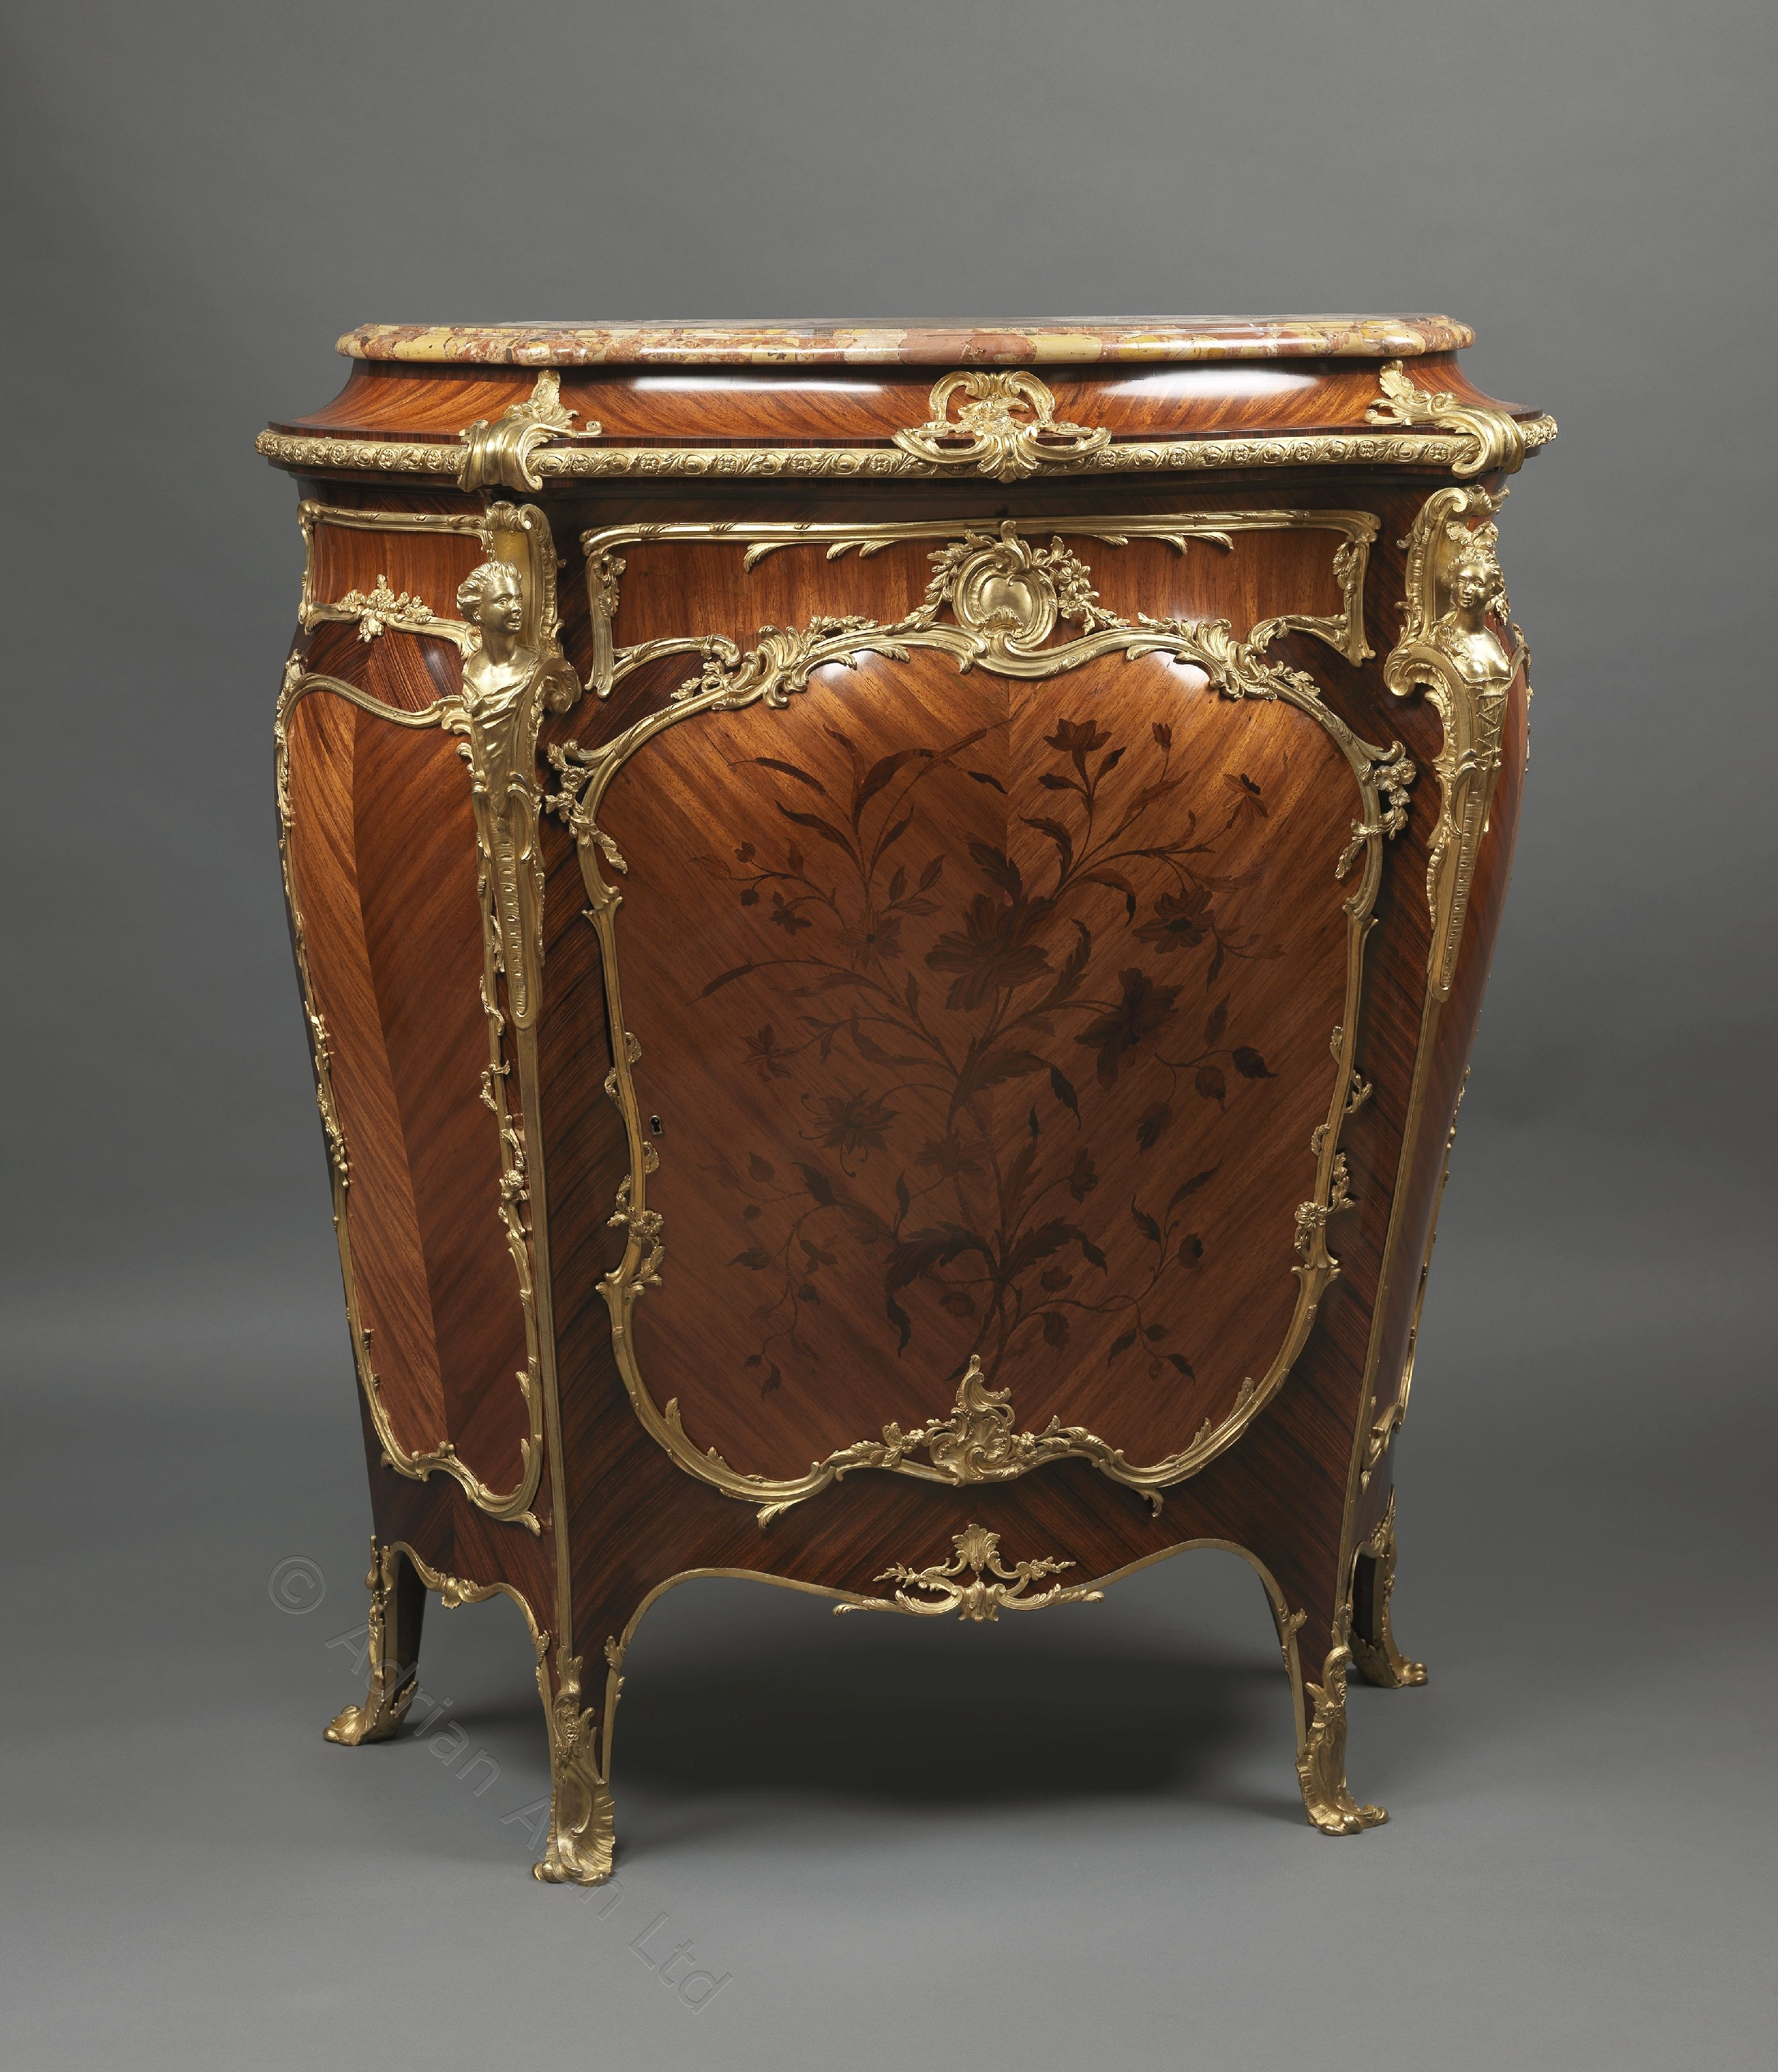 a fine louis xv style gilt bronze mounted marquetry kingwood side cabinet by joseph emmanuel. Black Bedroom Furniture Sets. Home Design Ideas